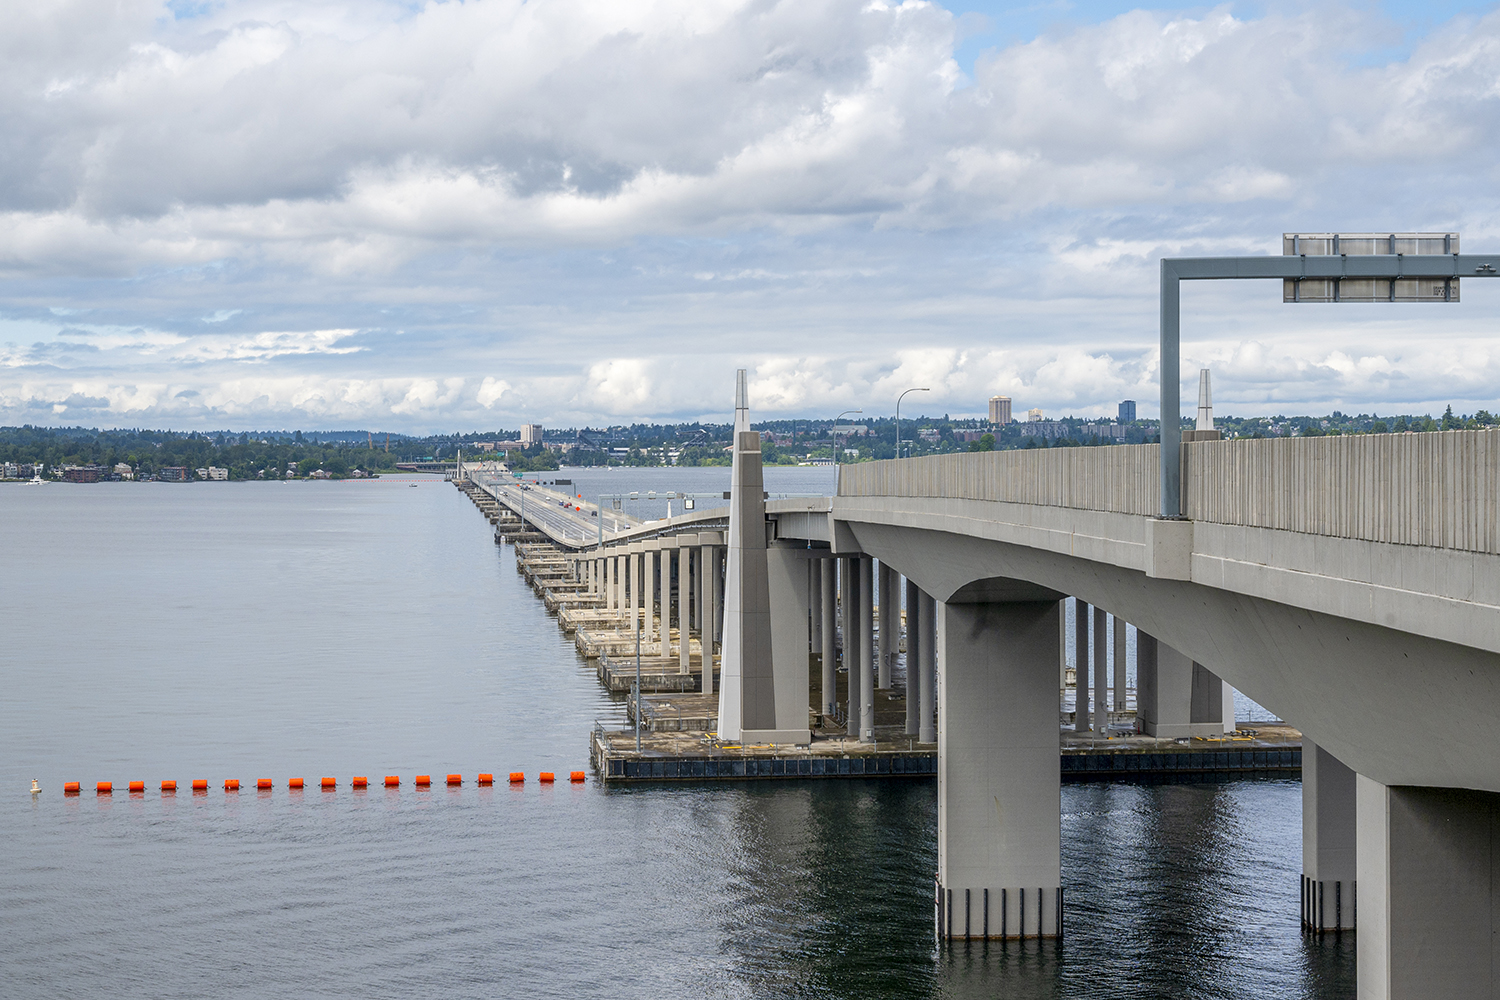 Washington's Evergreen Point Floating Bridge, commonly known as the 520 Bridge, is the longest floating bridge in the world at 1.4 miles across (and the world's widest, too). (Image: Rachael Jones / Seattle Refined)